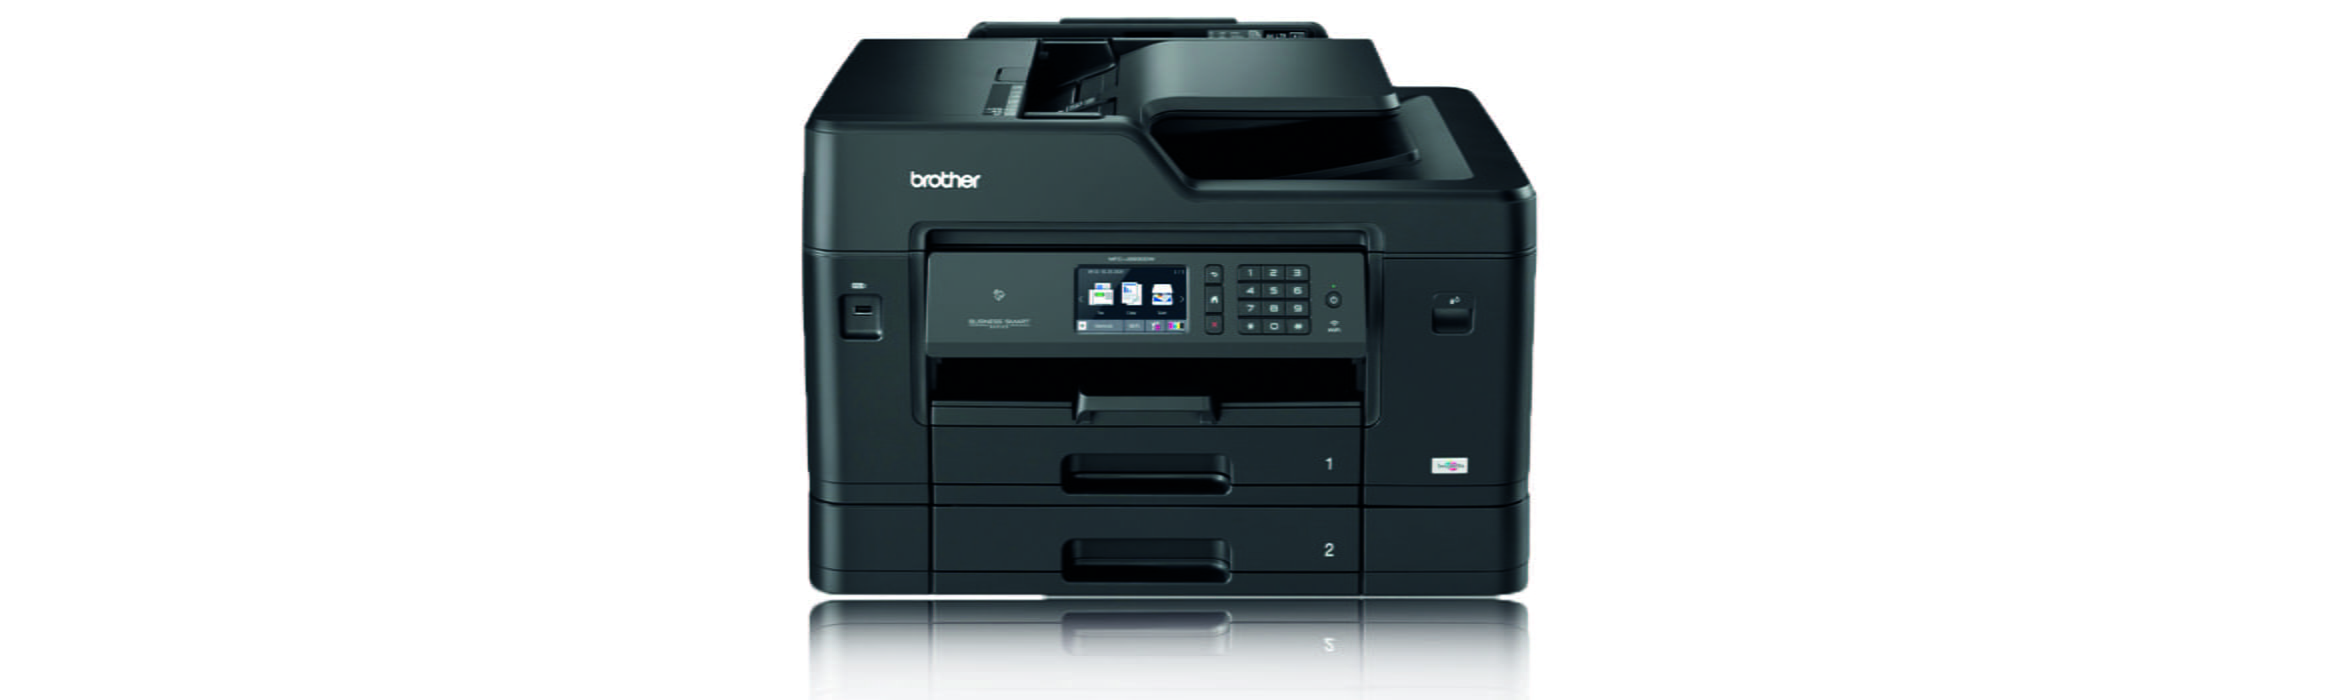 Brother MFC-J6930DW business smart printer